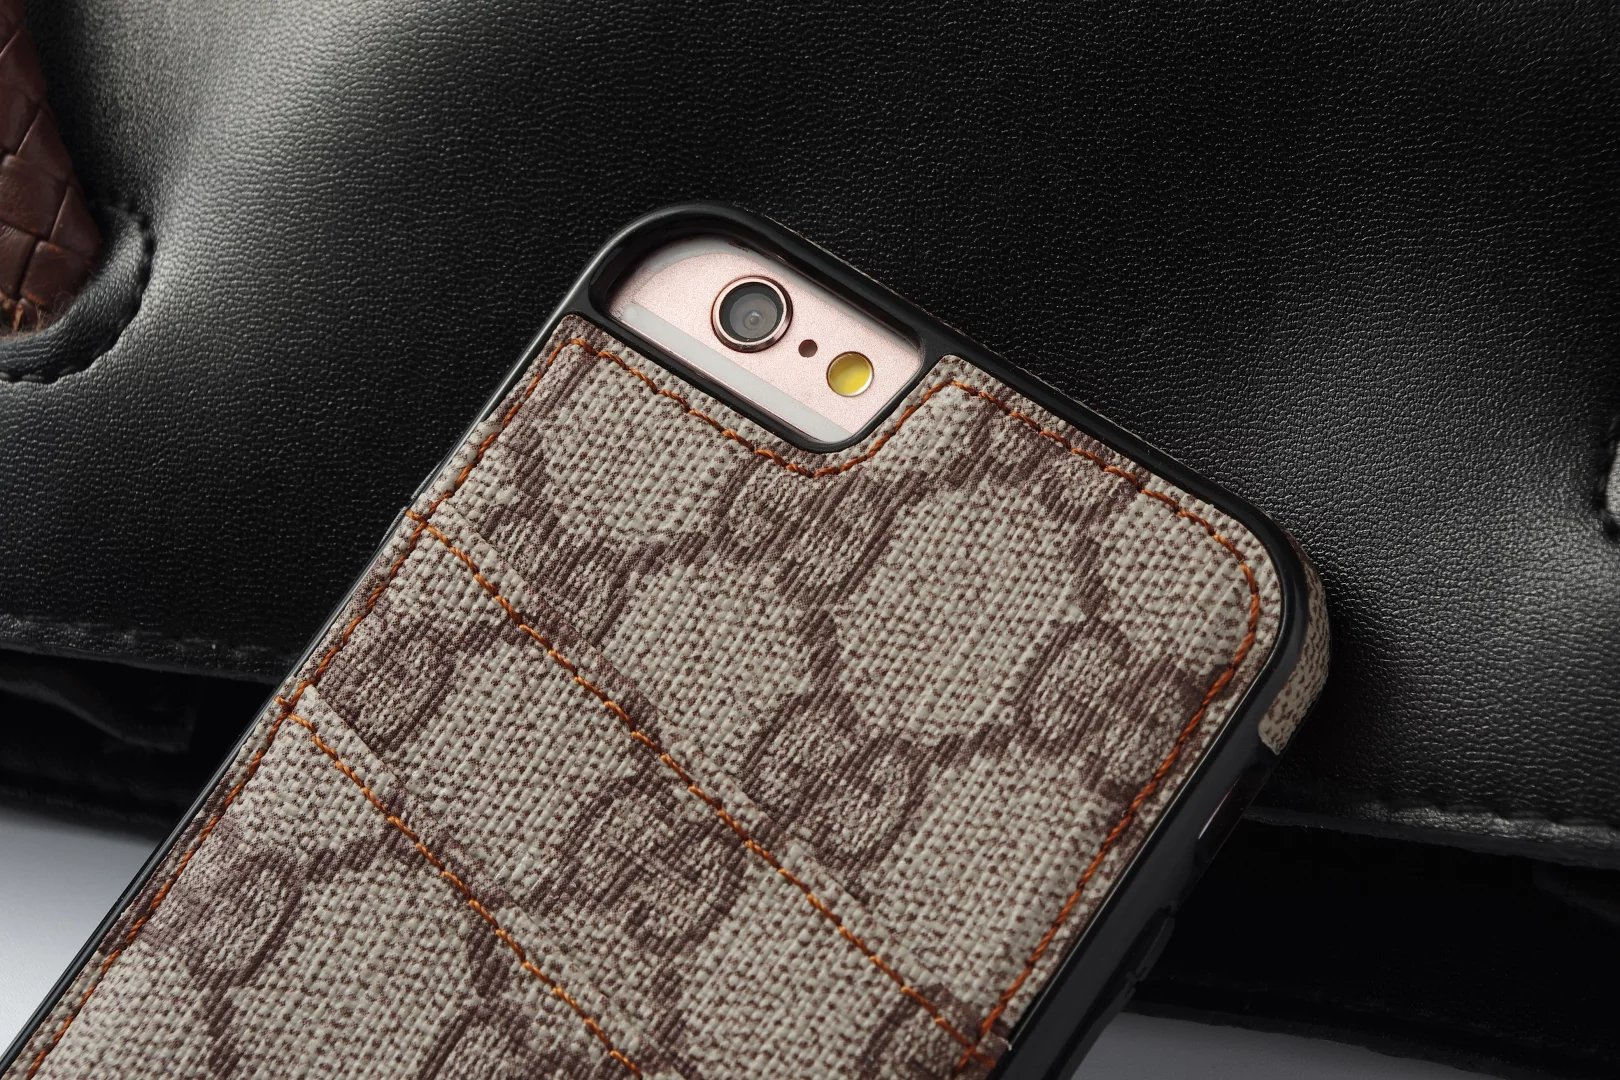 cell phone covers iphone 8 iphone 8 cases and screen protectors Gucci iphone 8 case best designer phone cases iphone 8 covers uk phone covers 8 customize a phone case i phones cases where can i buy phone cases online